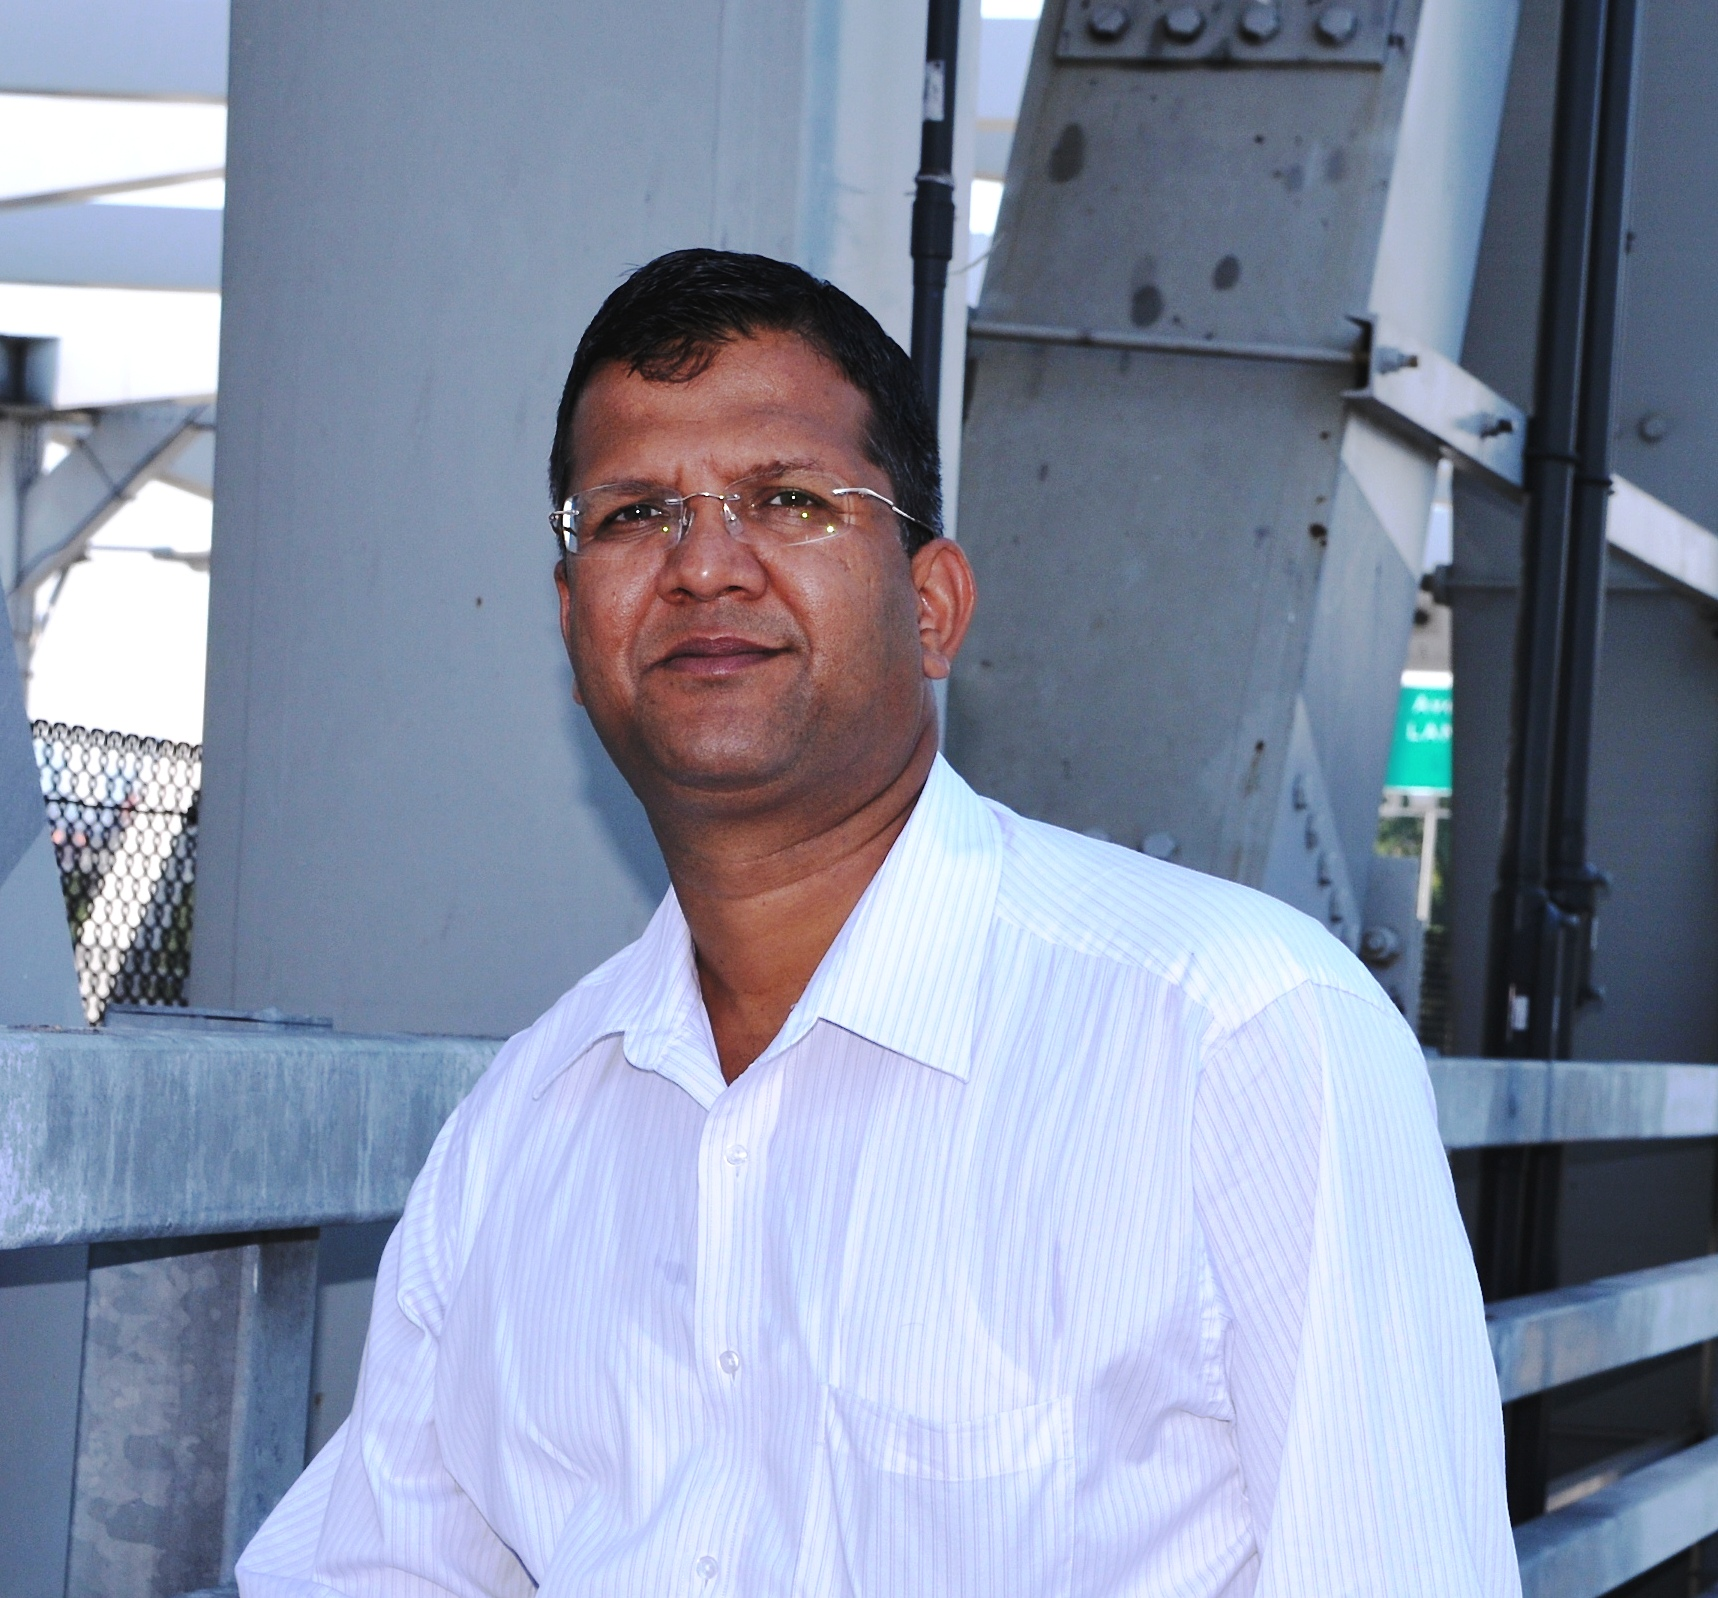 CCNY Professor of Civil Engineering Anil K. Agrawal on Third Avenue Bridge over the Harlem River